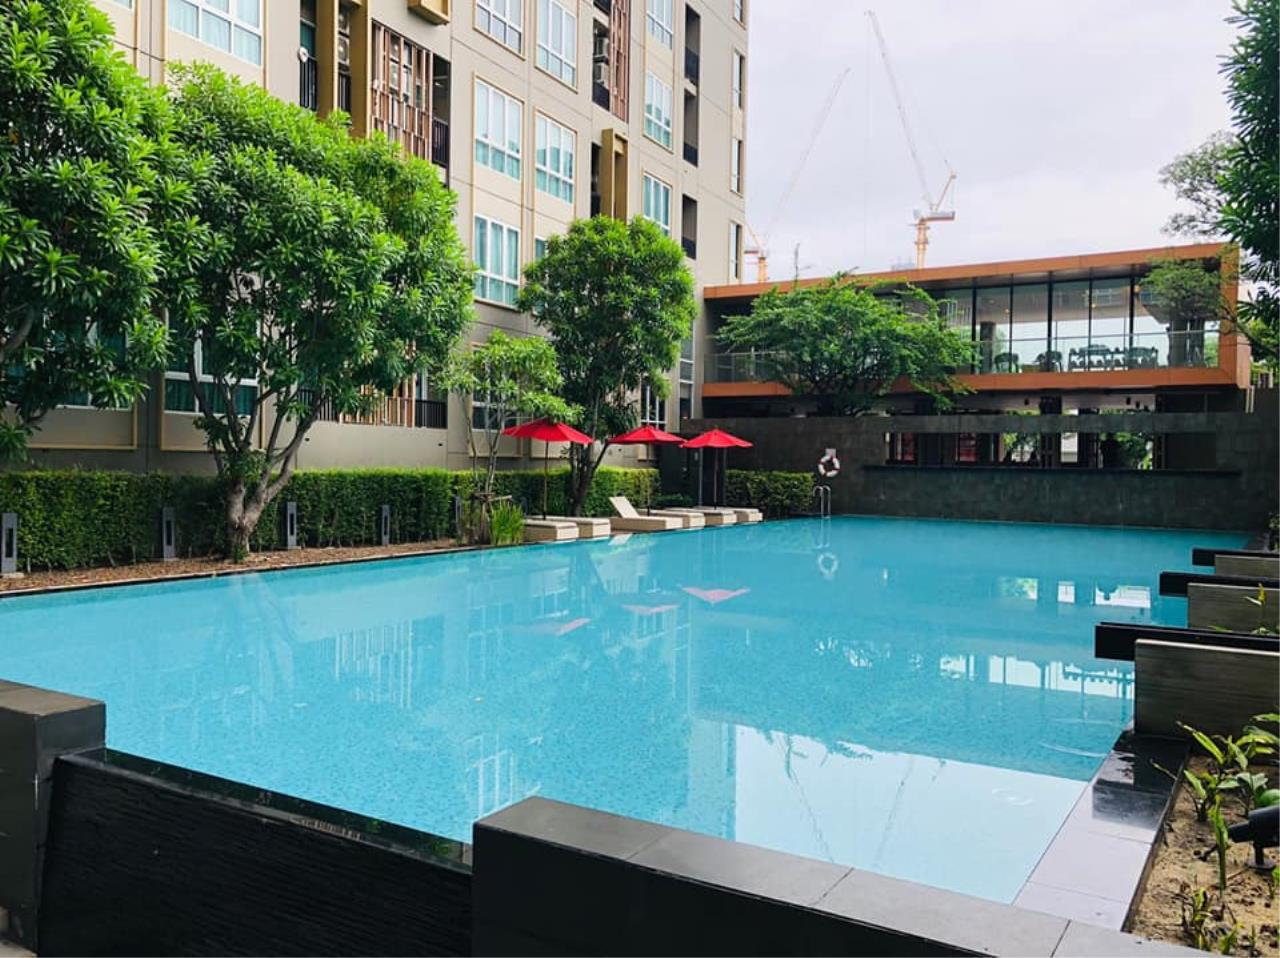 Agent - Prombood Agency's Sale - For Rent 1 Bedroom (Corner Unit) 31.95 sq.m. The Key Sathorn-Ratchapruek near Wutthakat BTS Station 13